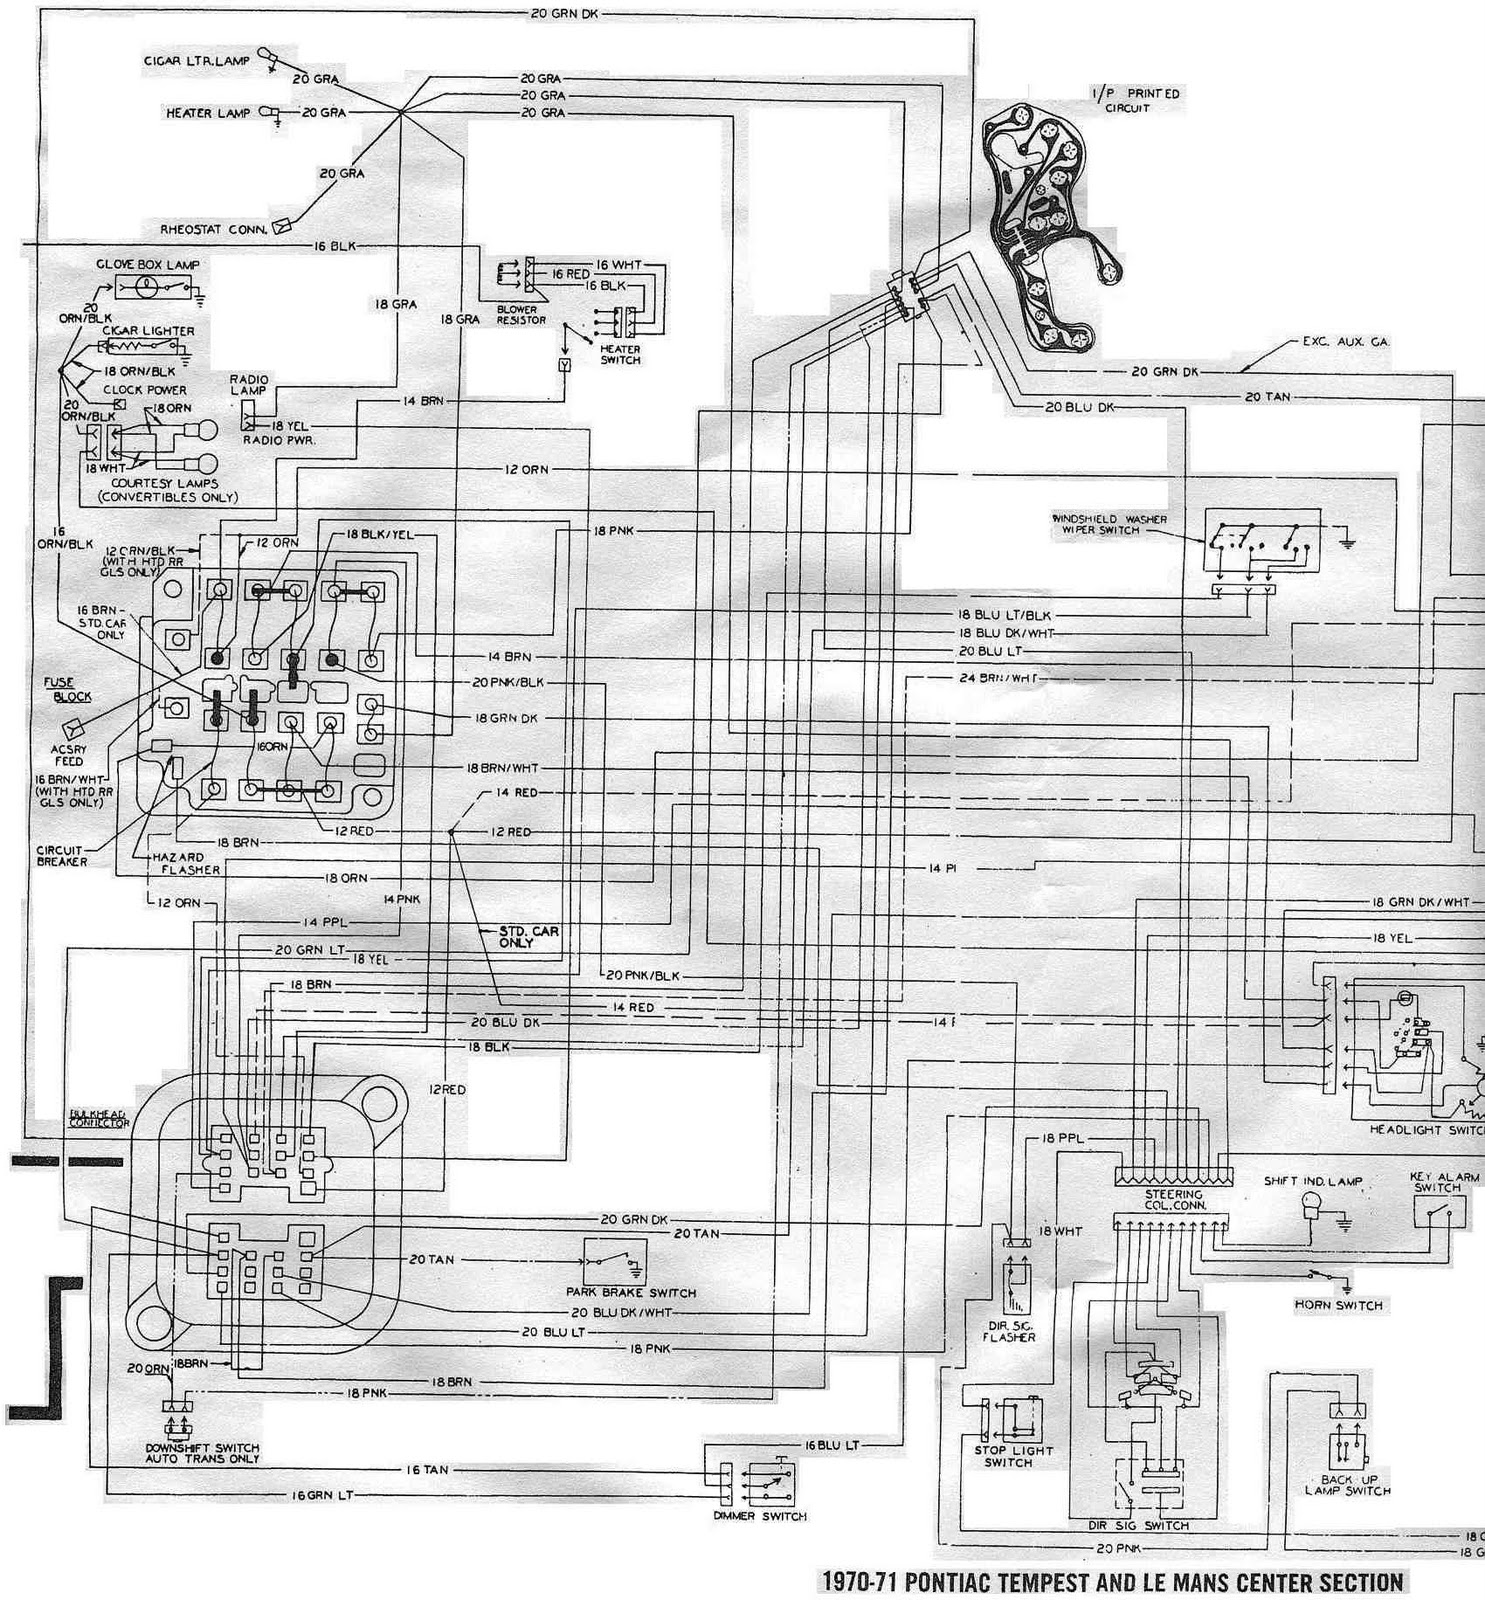 1979 Firebird Wiring Diagram Library Pontiac Fantastic Photos Electrical Circuit Tempest And Lemans 1970 1971 Center Section